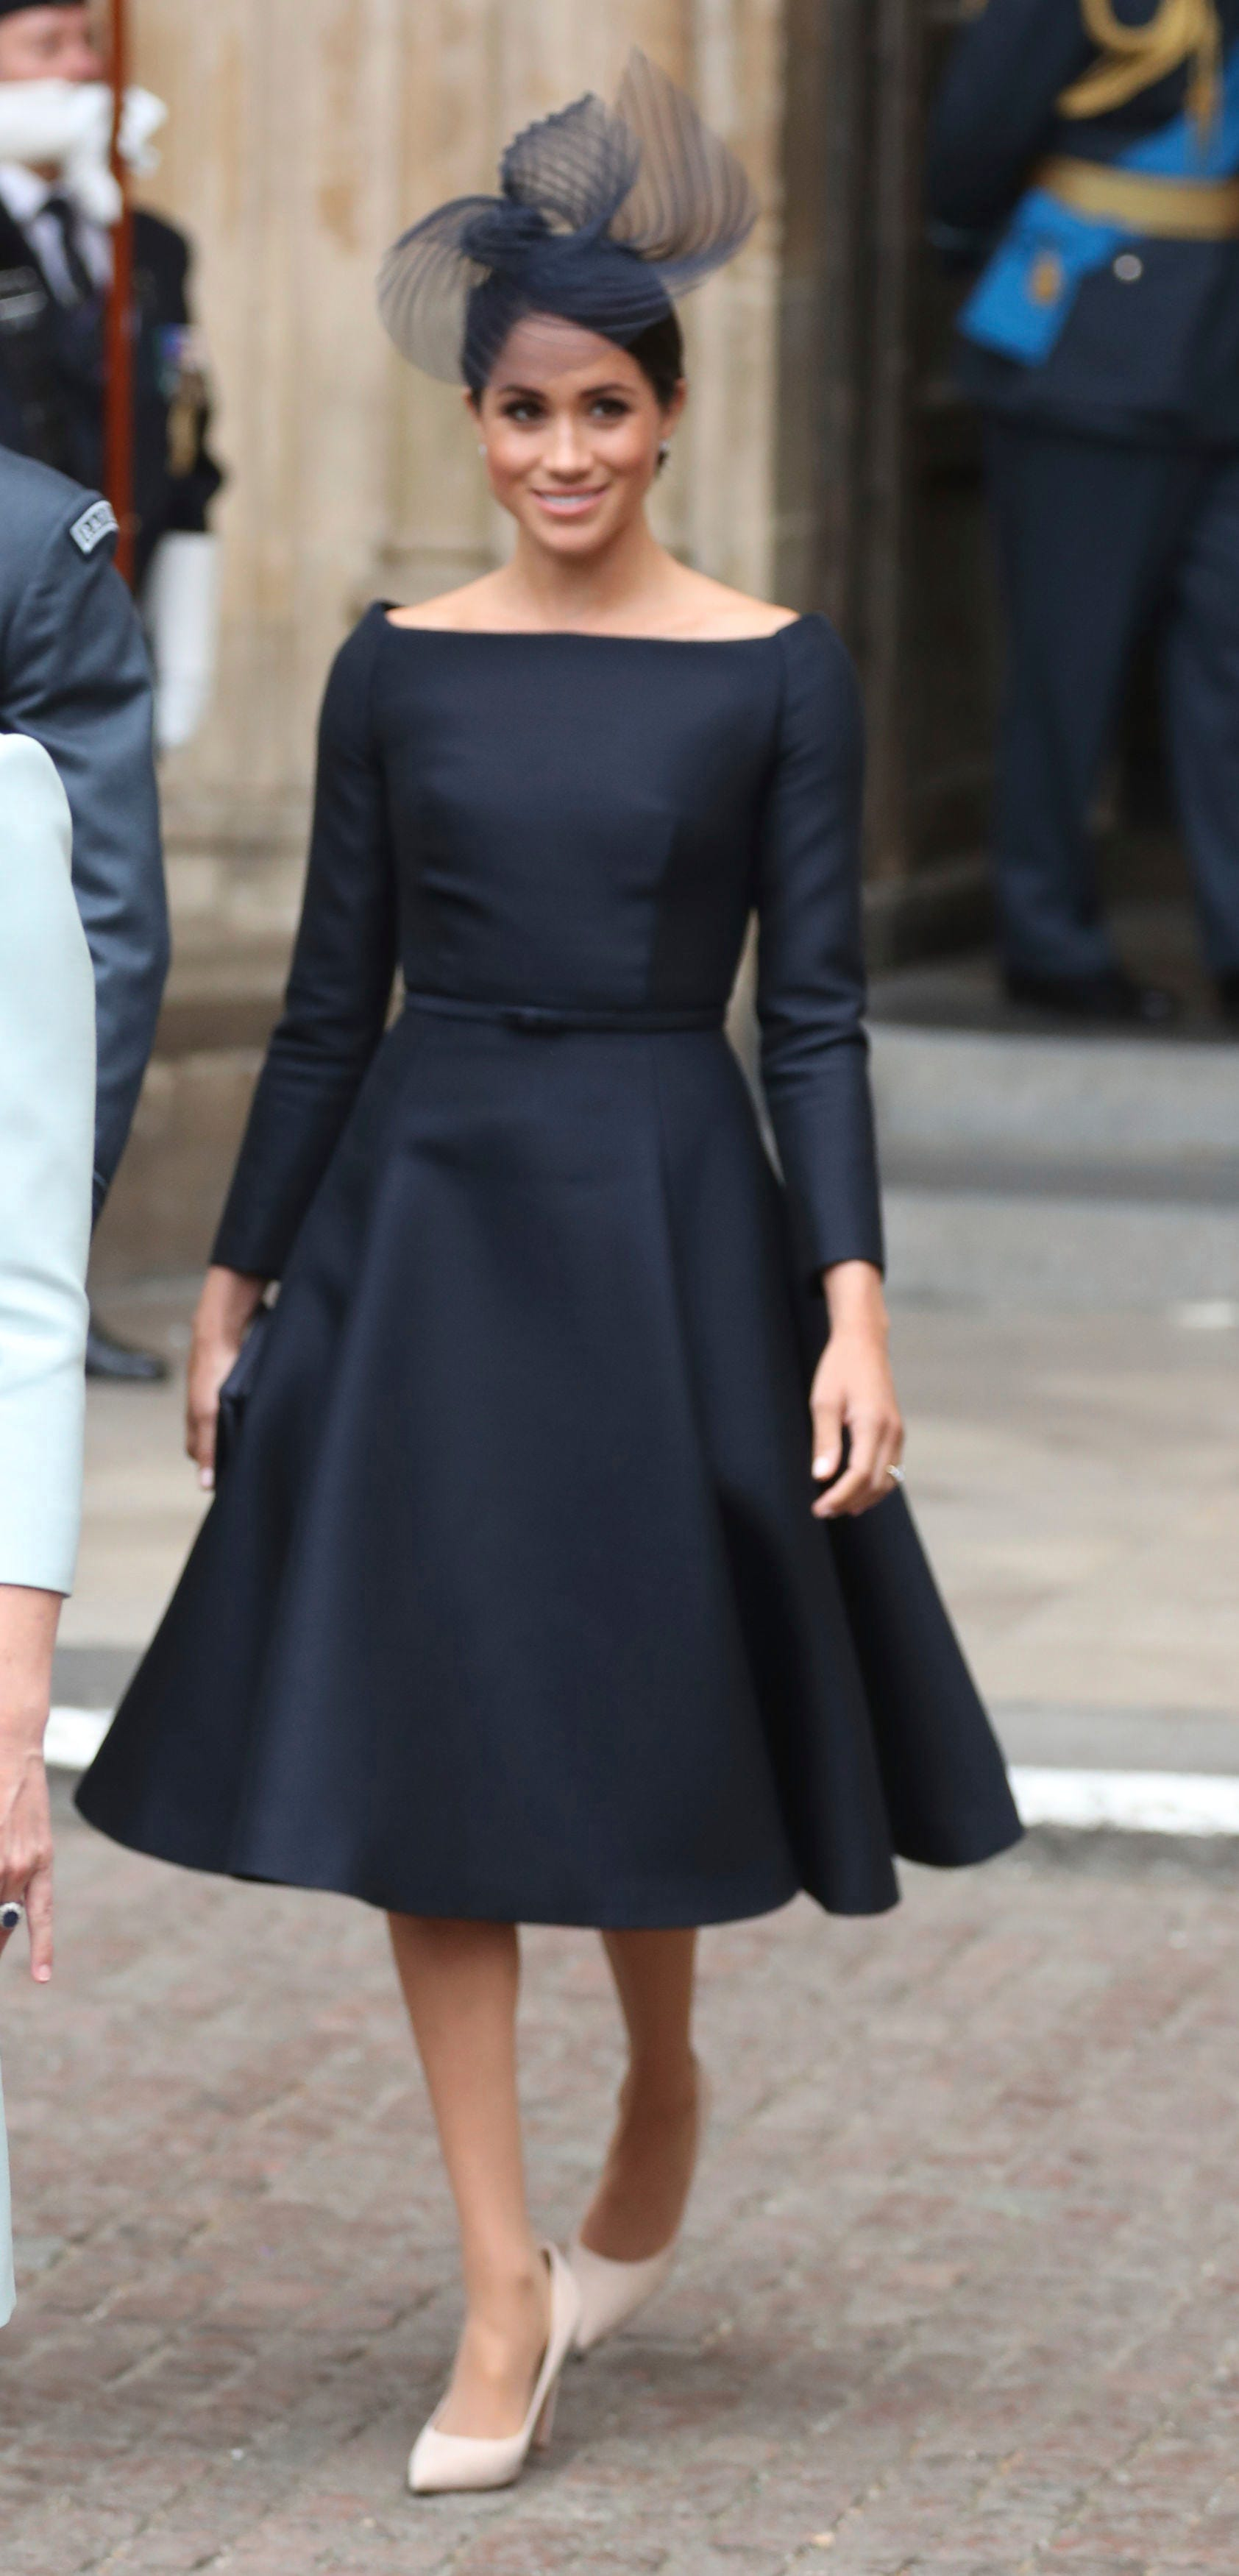 75f82e0c0 http://www.usatoday.com/picture-gallery/life/2018/06/11/duchess ...